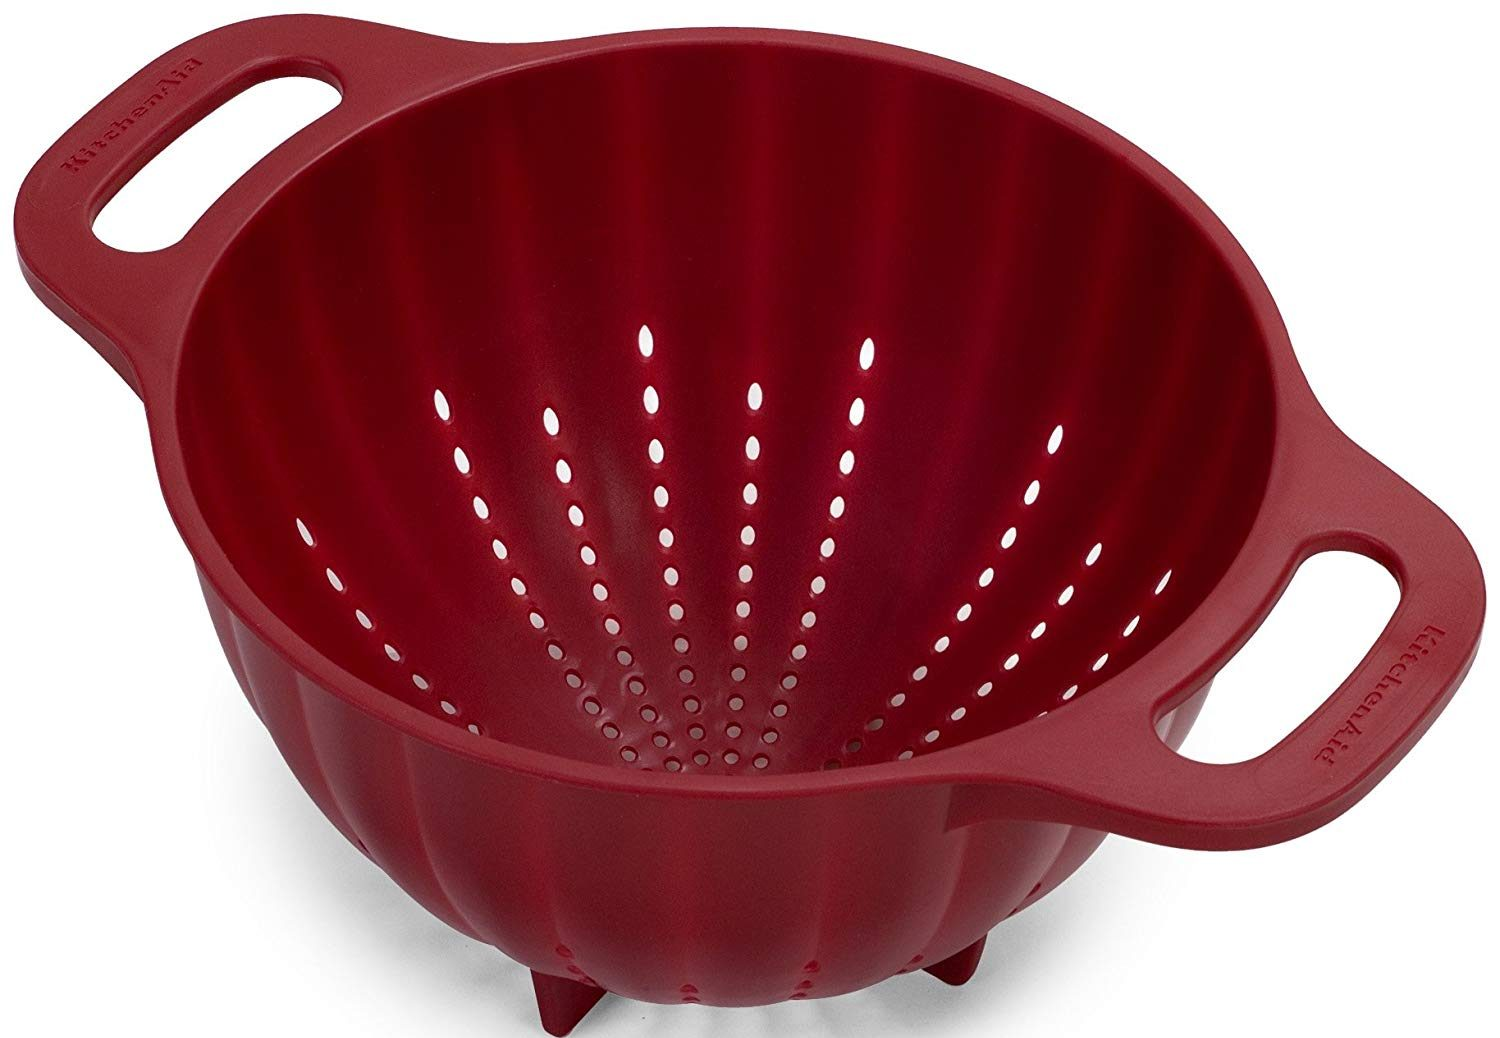 KitchenAid Plastic Colander